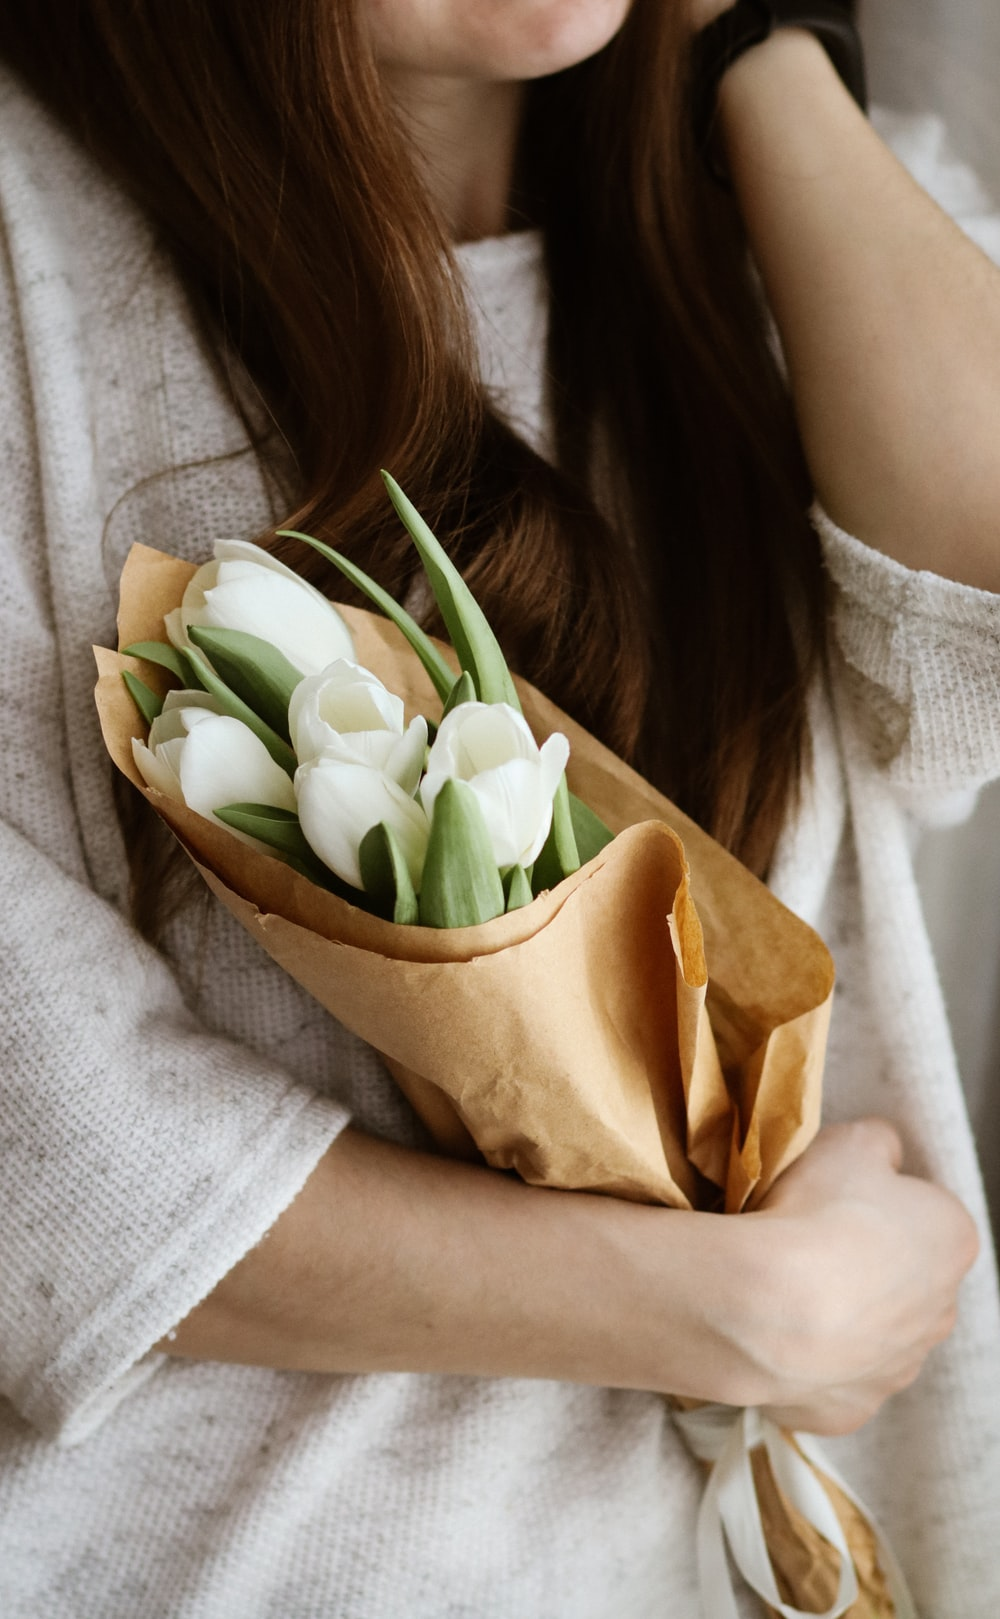 woman in white knit sweater holding white tulips bouquet